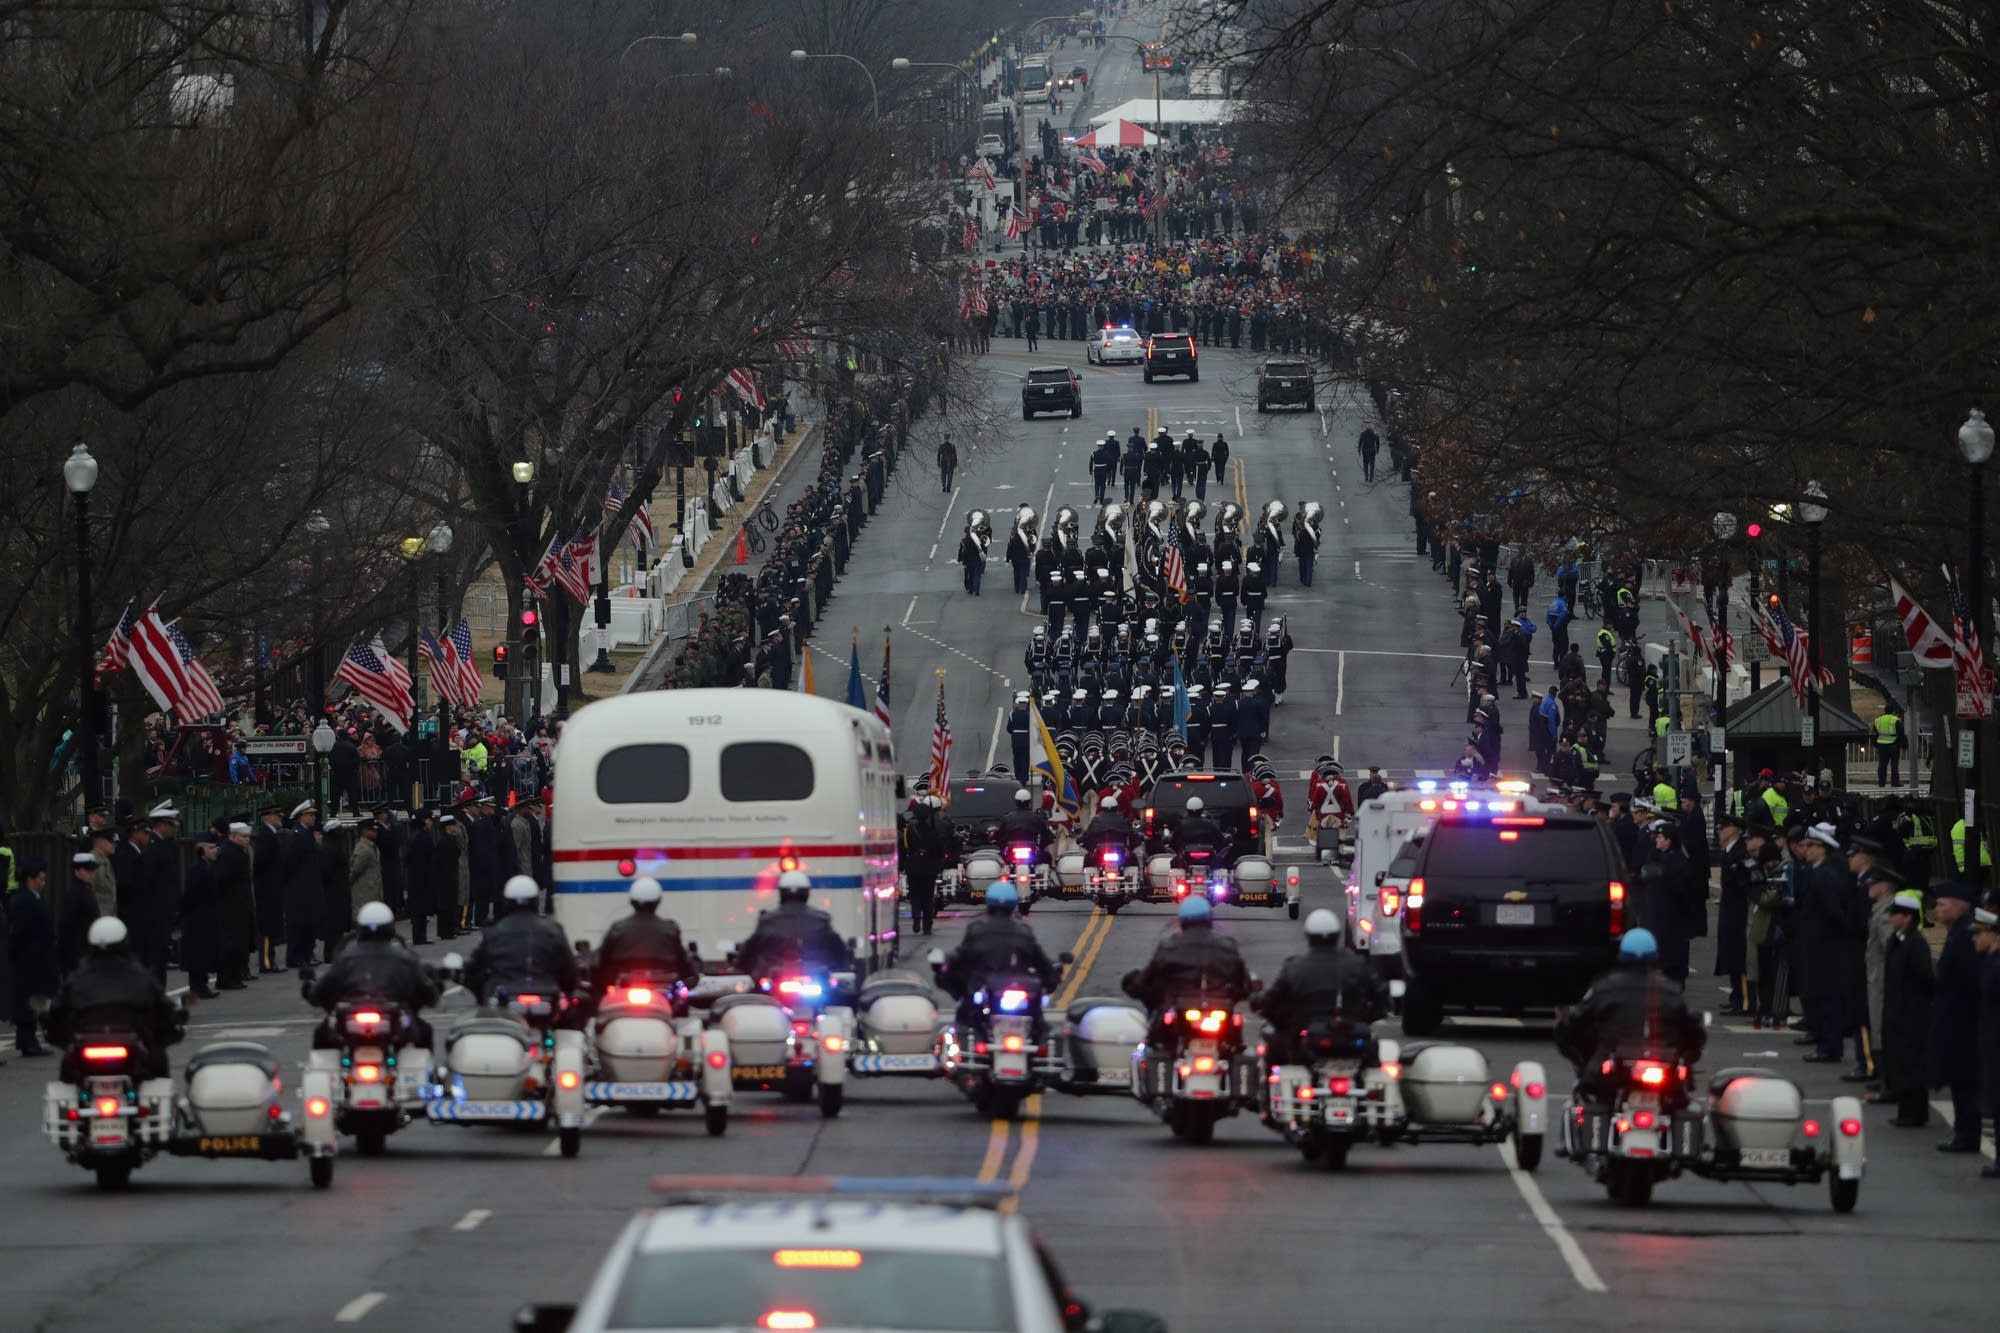 The Inaugural Parade proceeds on Pennsylvania Avenue.